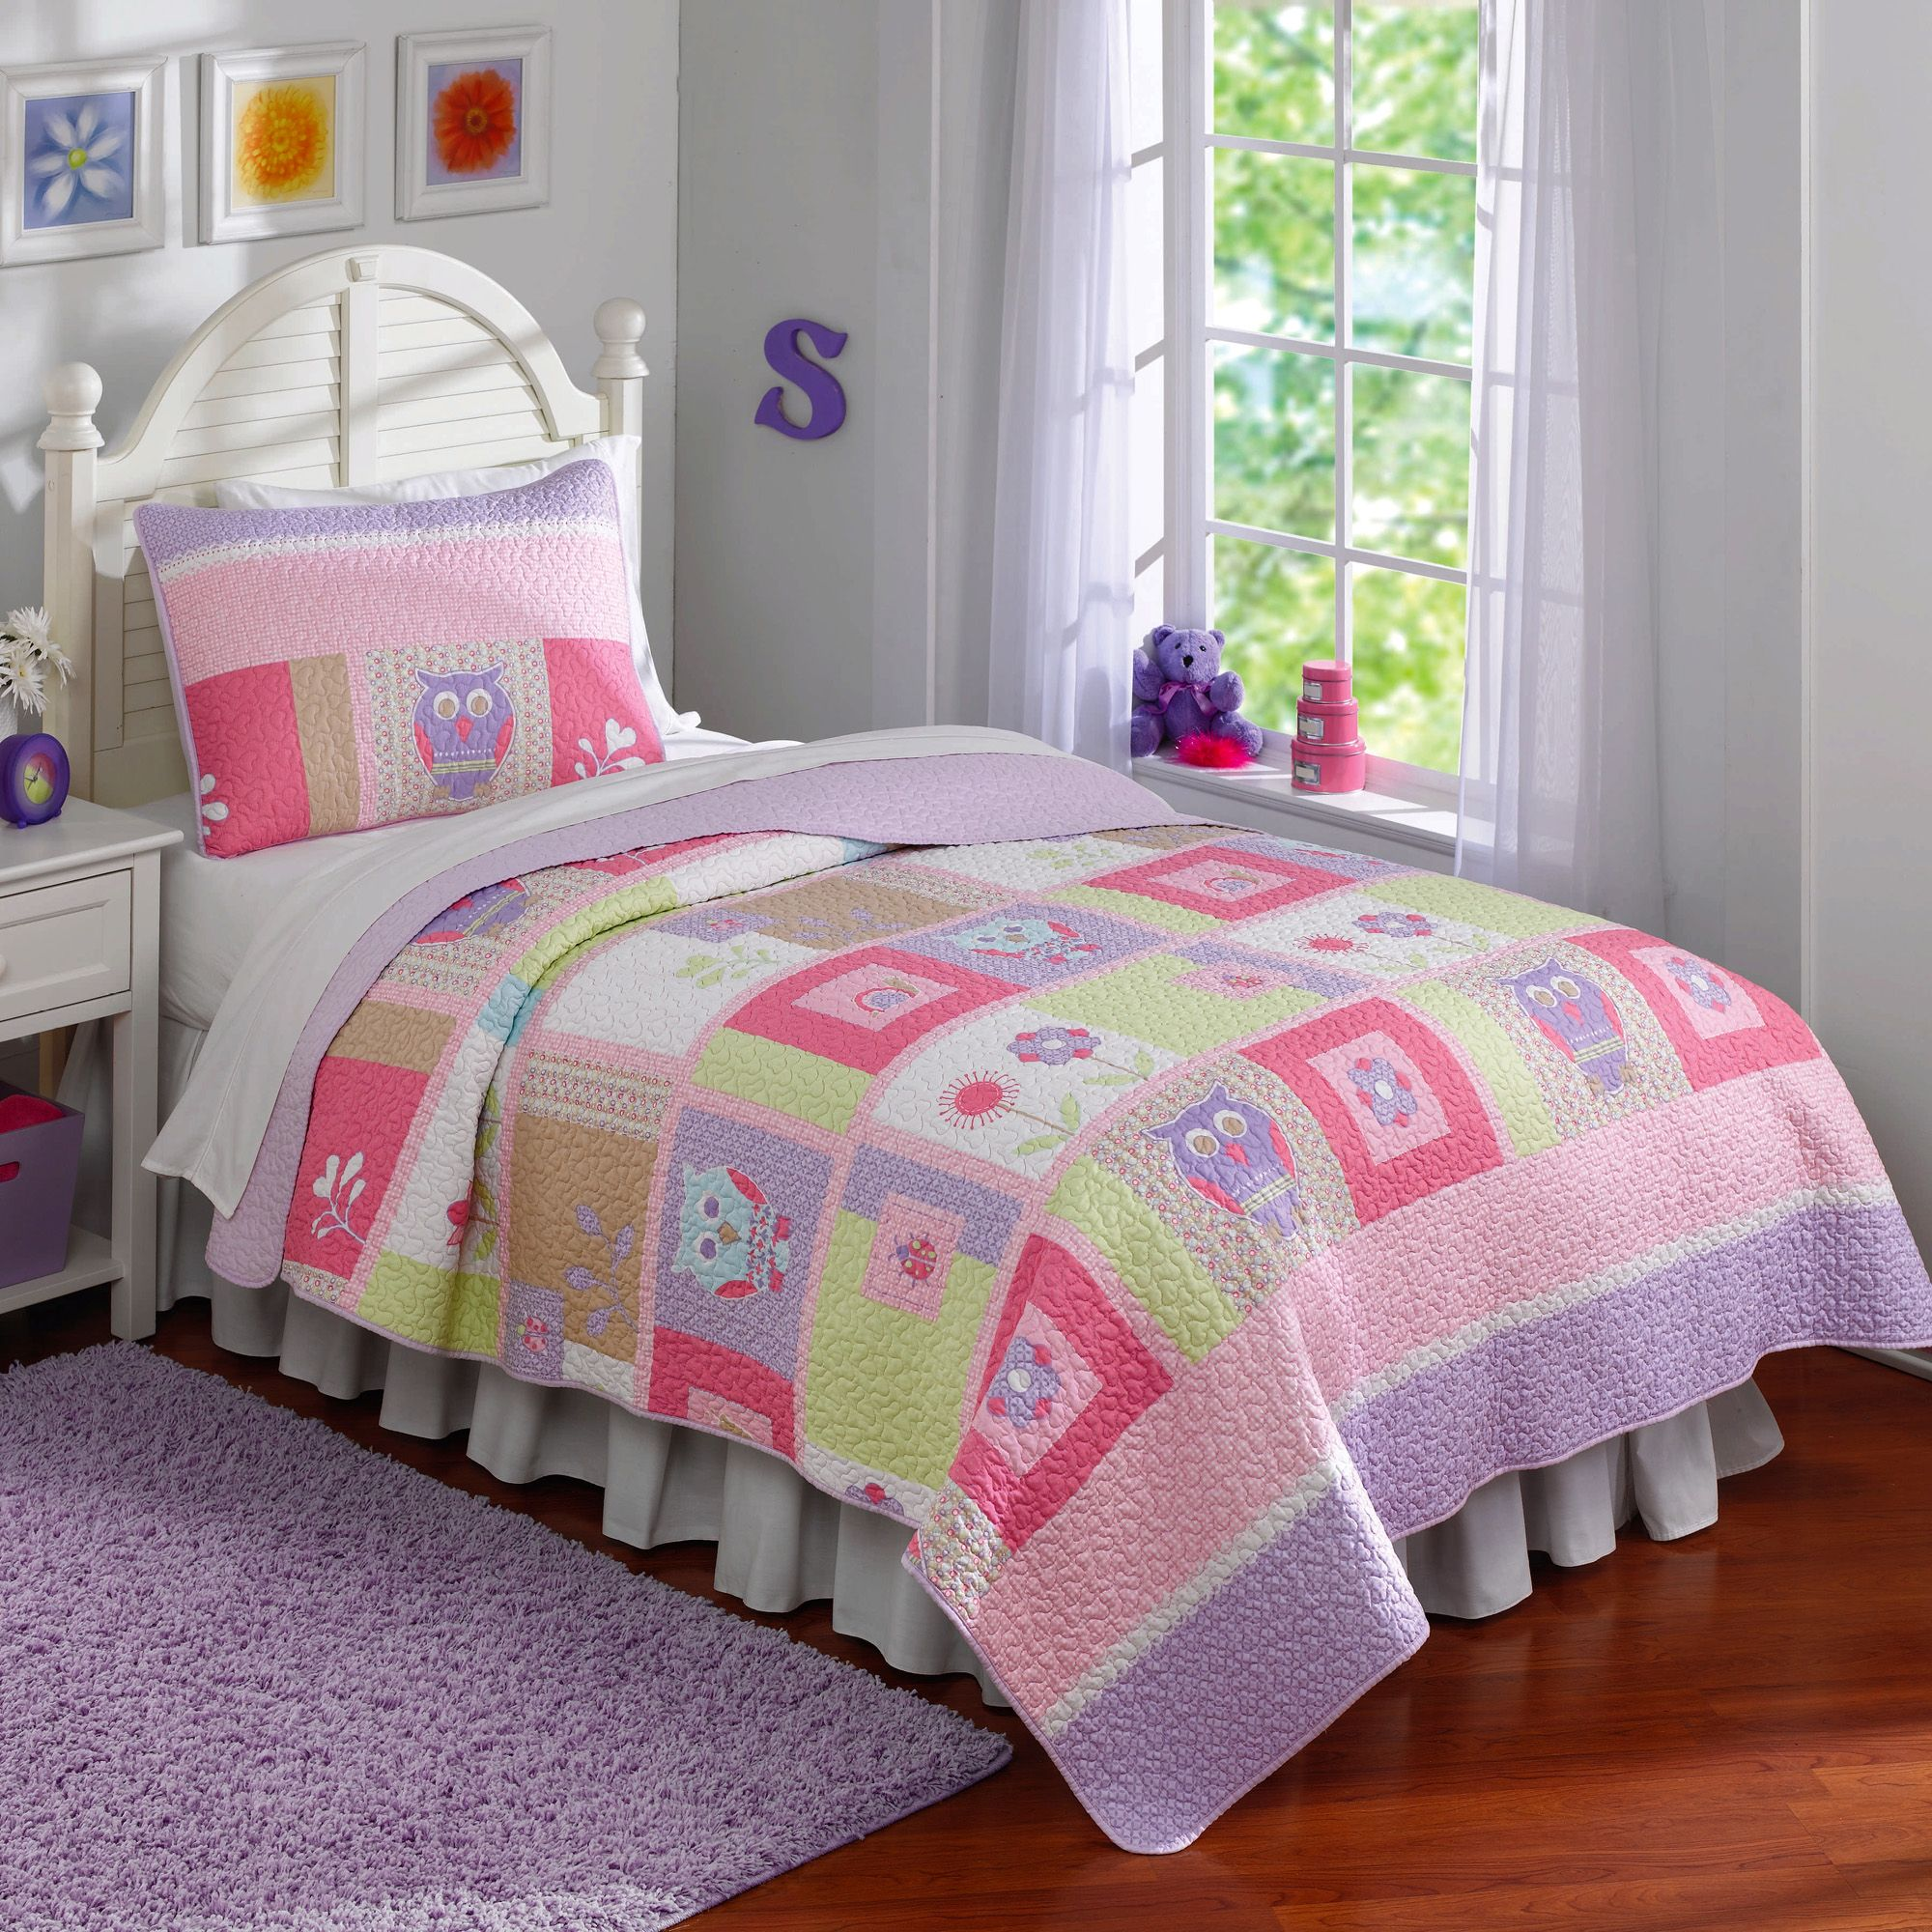 super superhero twin bed quilt crafts pinterest quilts room kids hero boy pin for